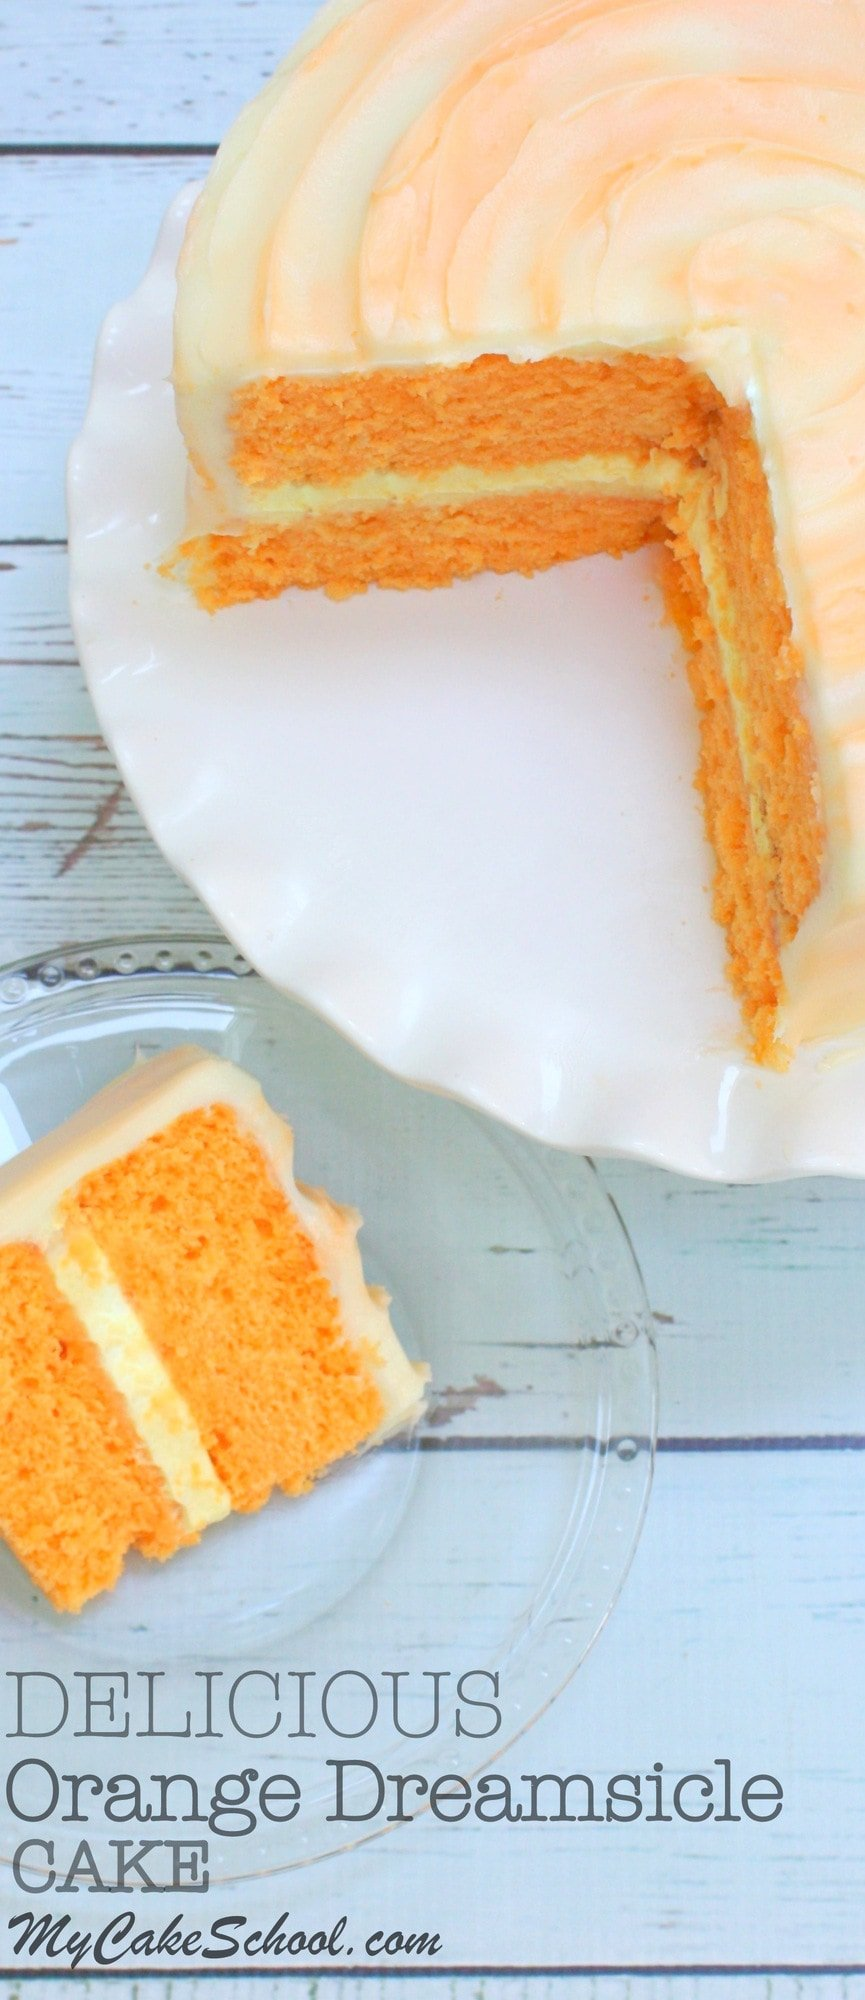 AMAZING Orange Dreamsicle Cake Recipe by MyCakeSchool.com! Moist homemade Orange Cake Layers filled with Orange Cream and Frosted with Orange Cream Cheese Frosting! YUM!